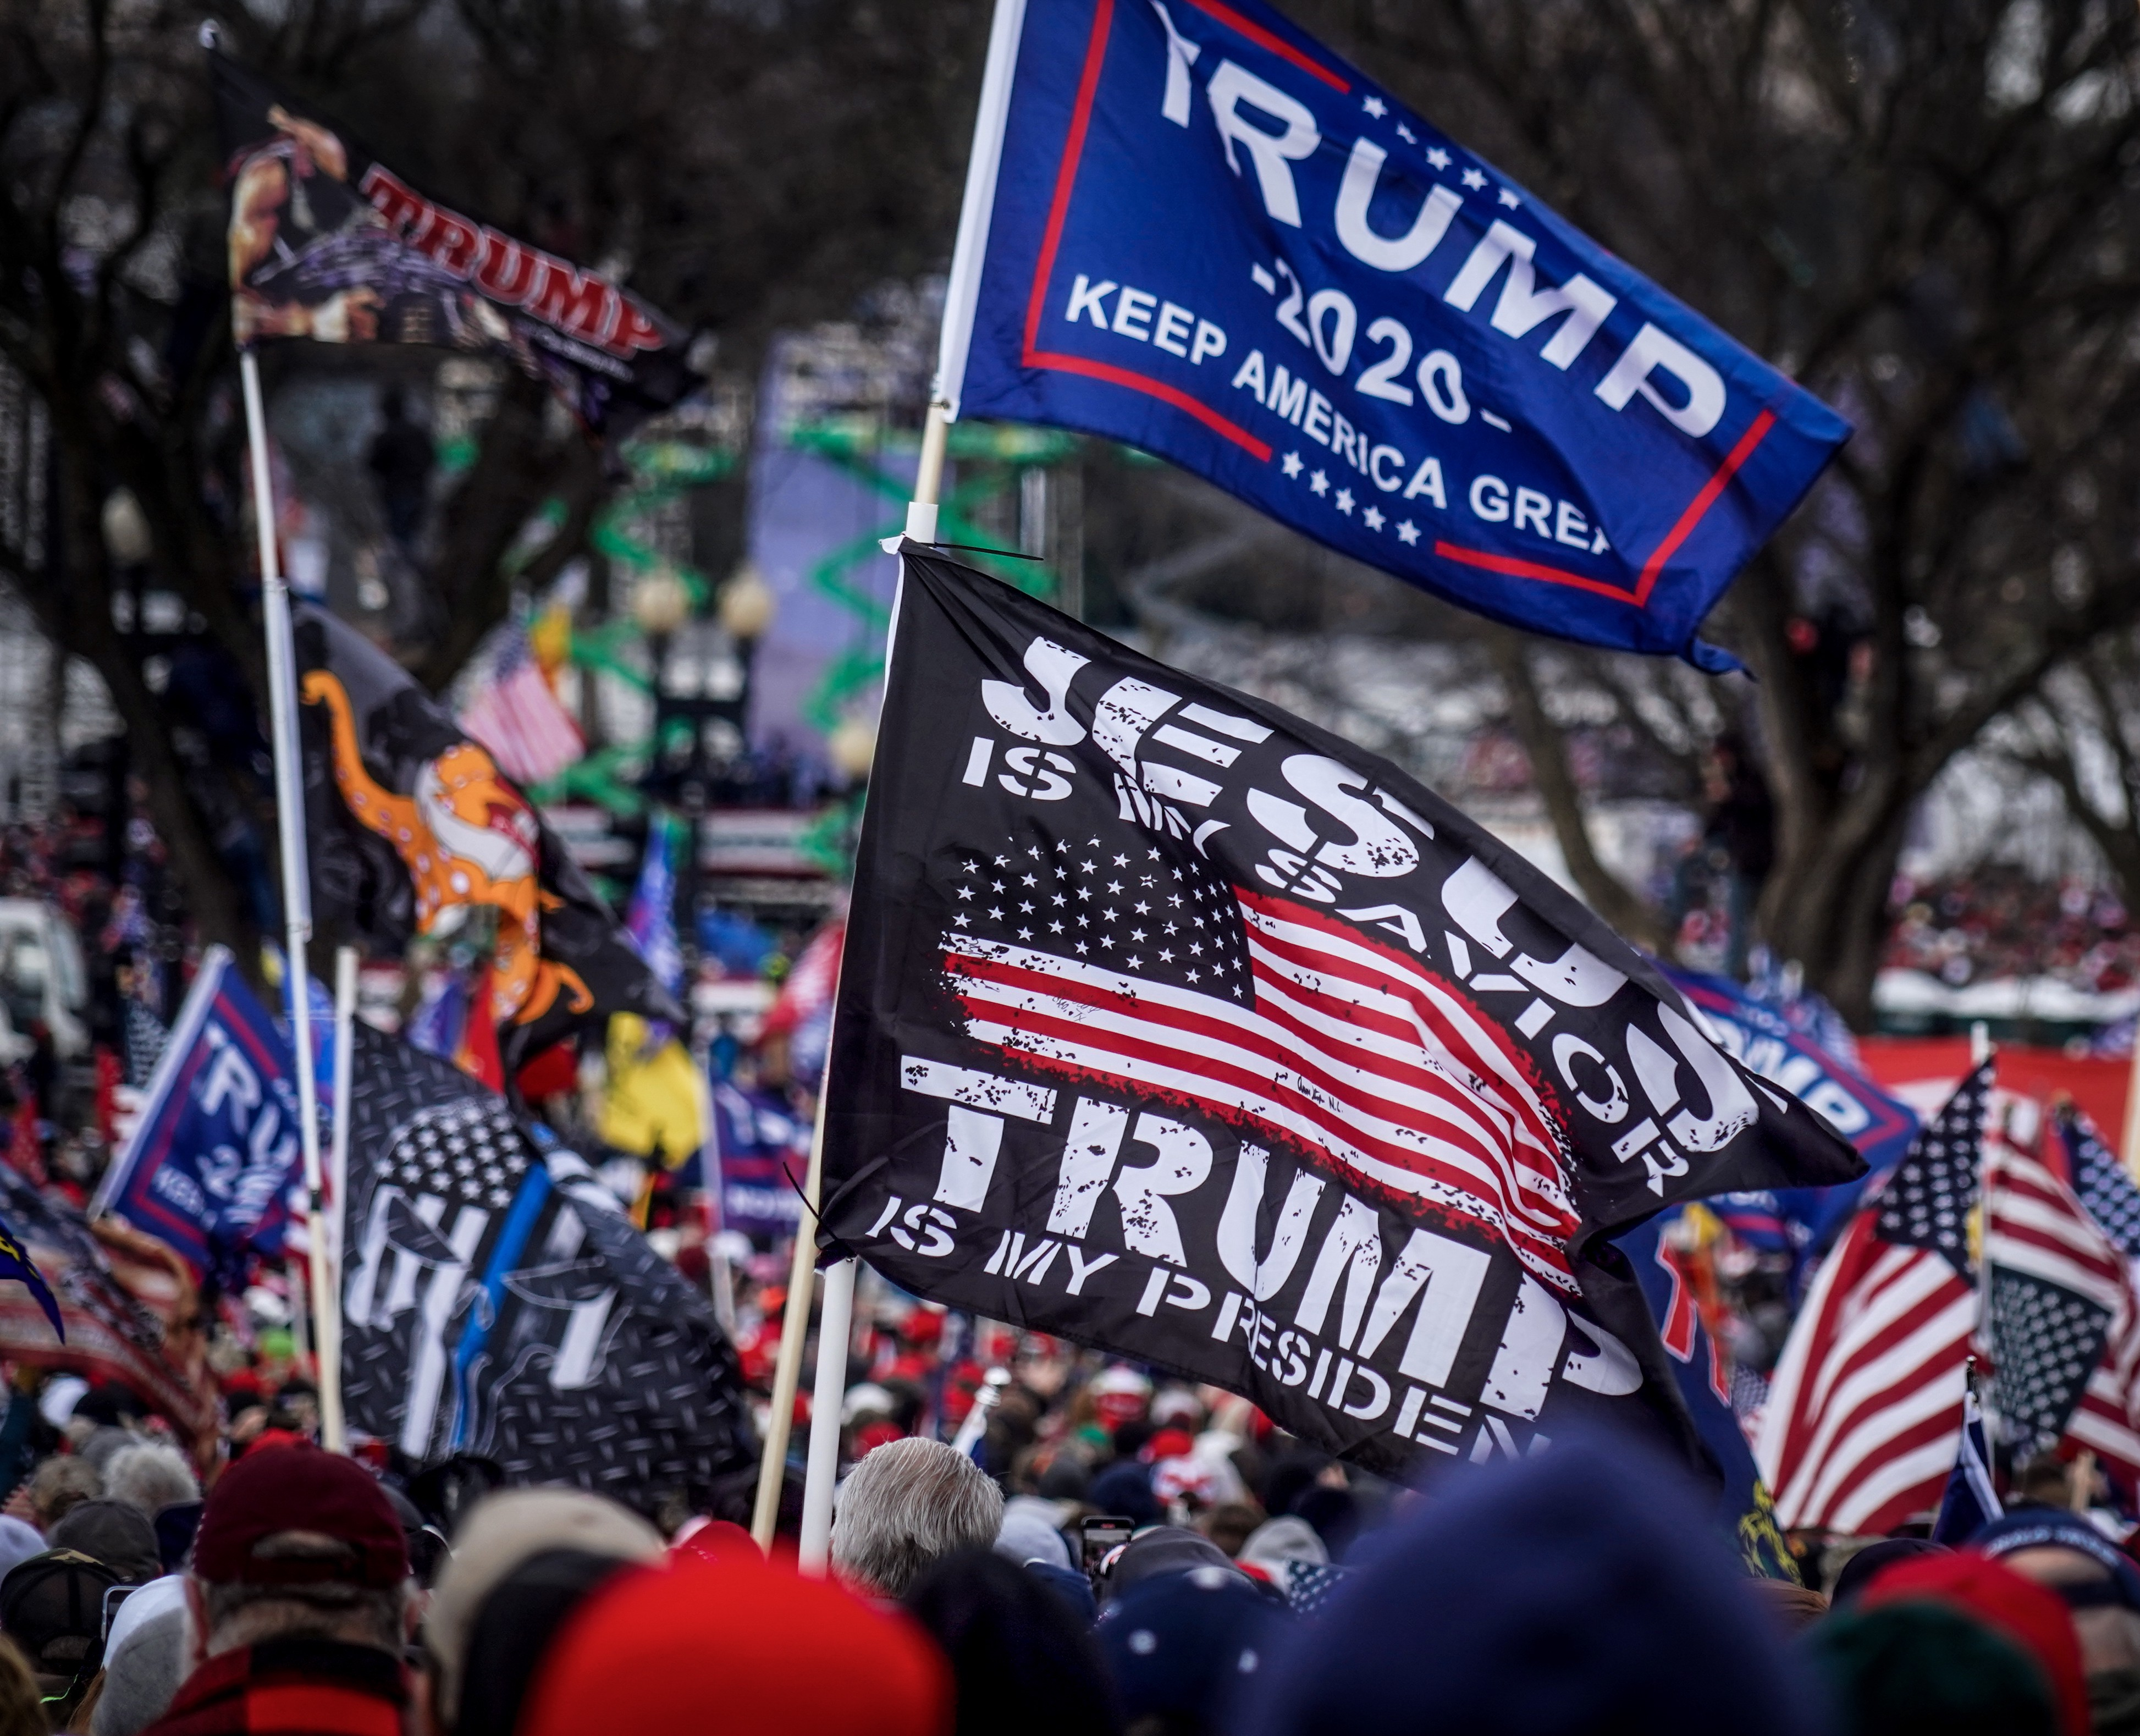 Trump supporters flying flags near the U.S. Capitol following the Stop the Steal rally on January 6, 2021 in Washington, DC.